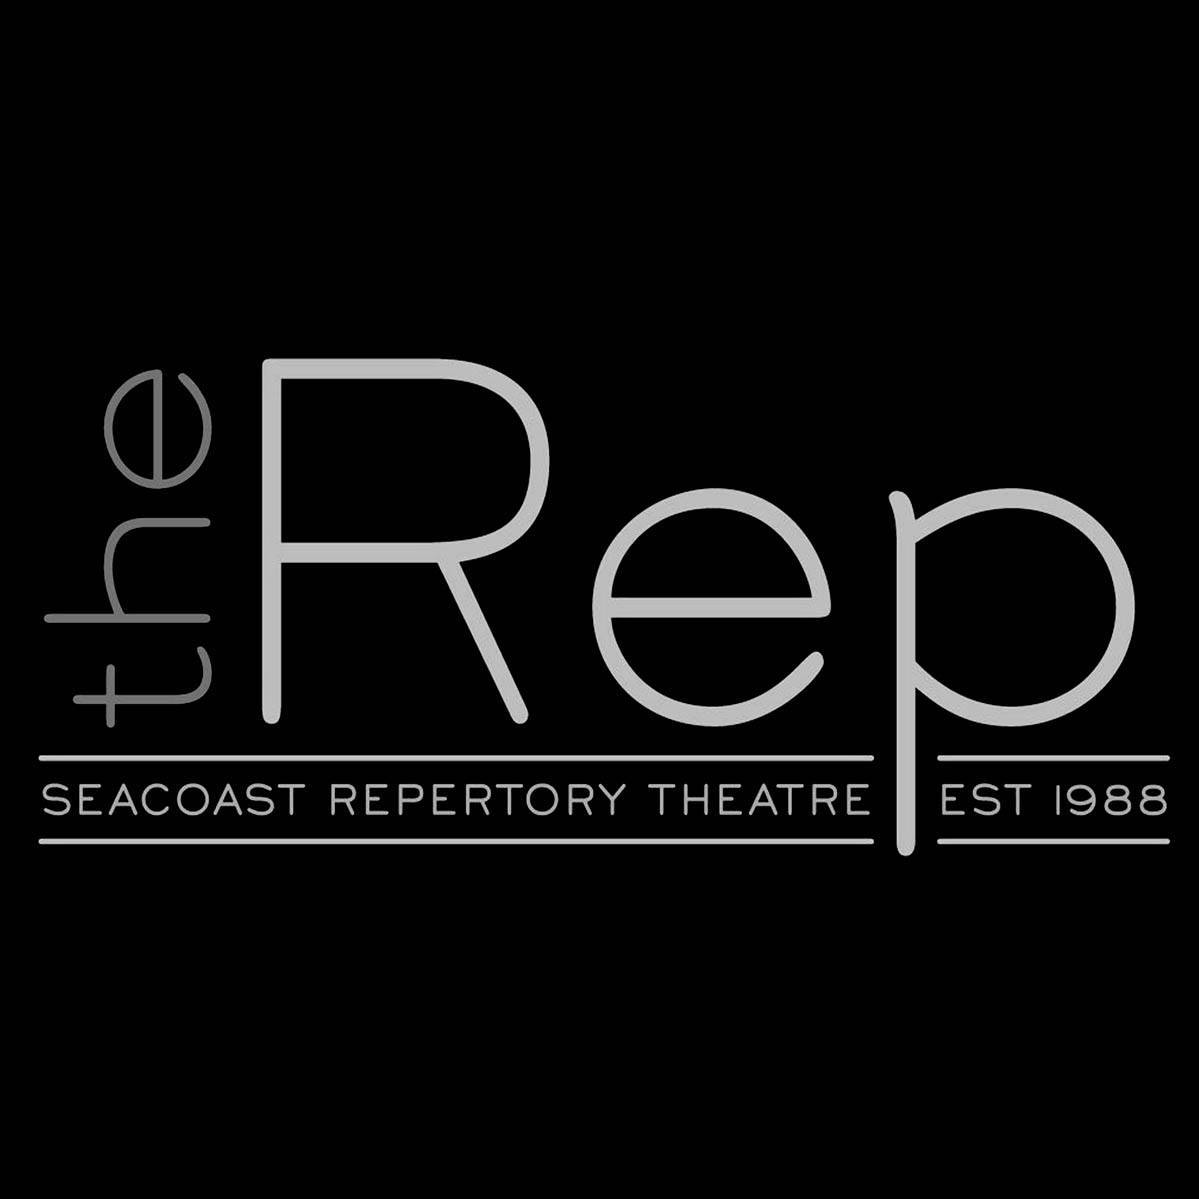 The Seacoast Repertory Theatre